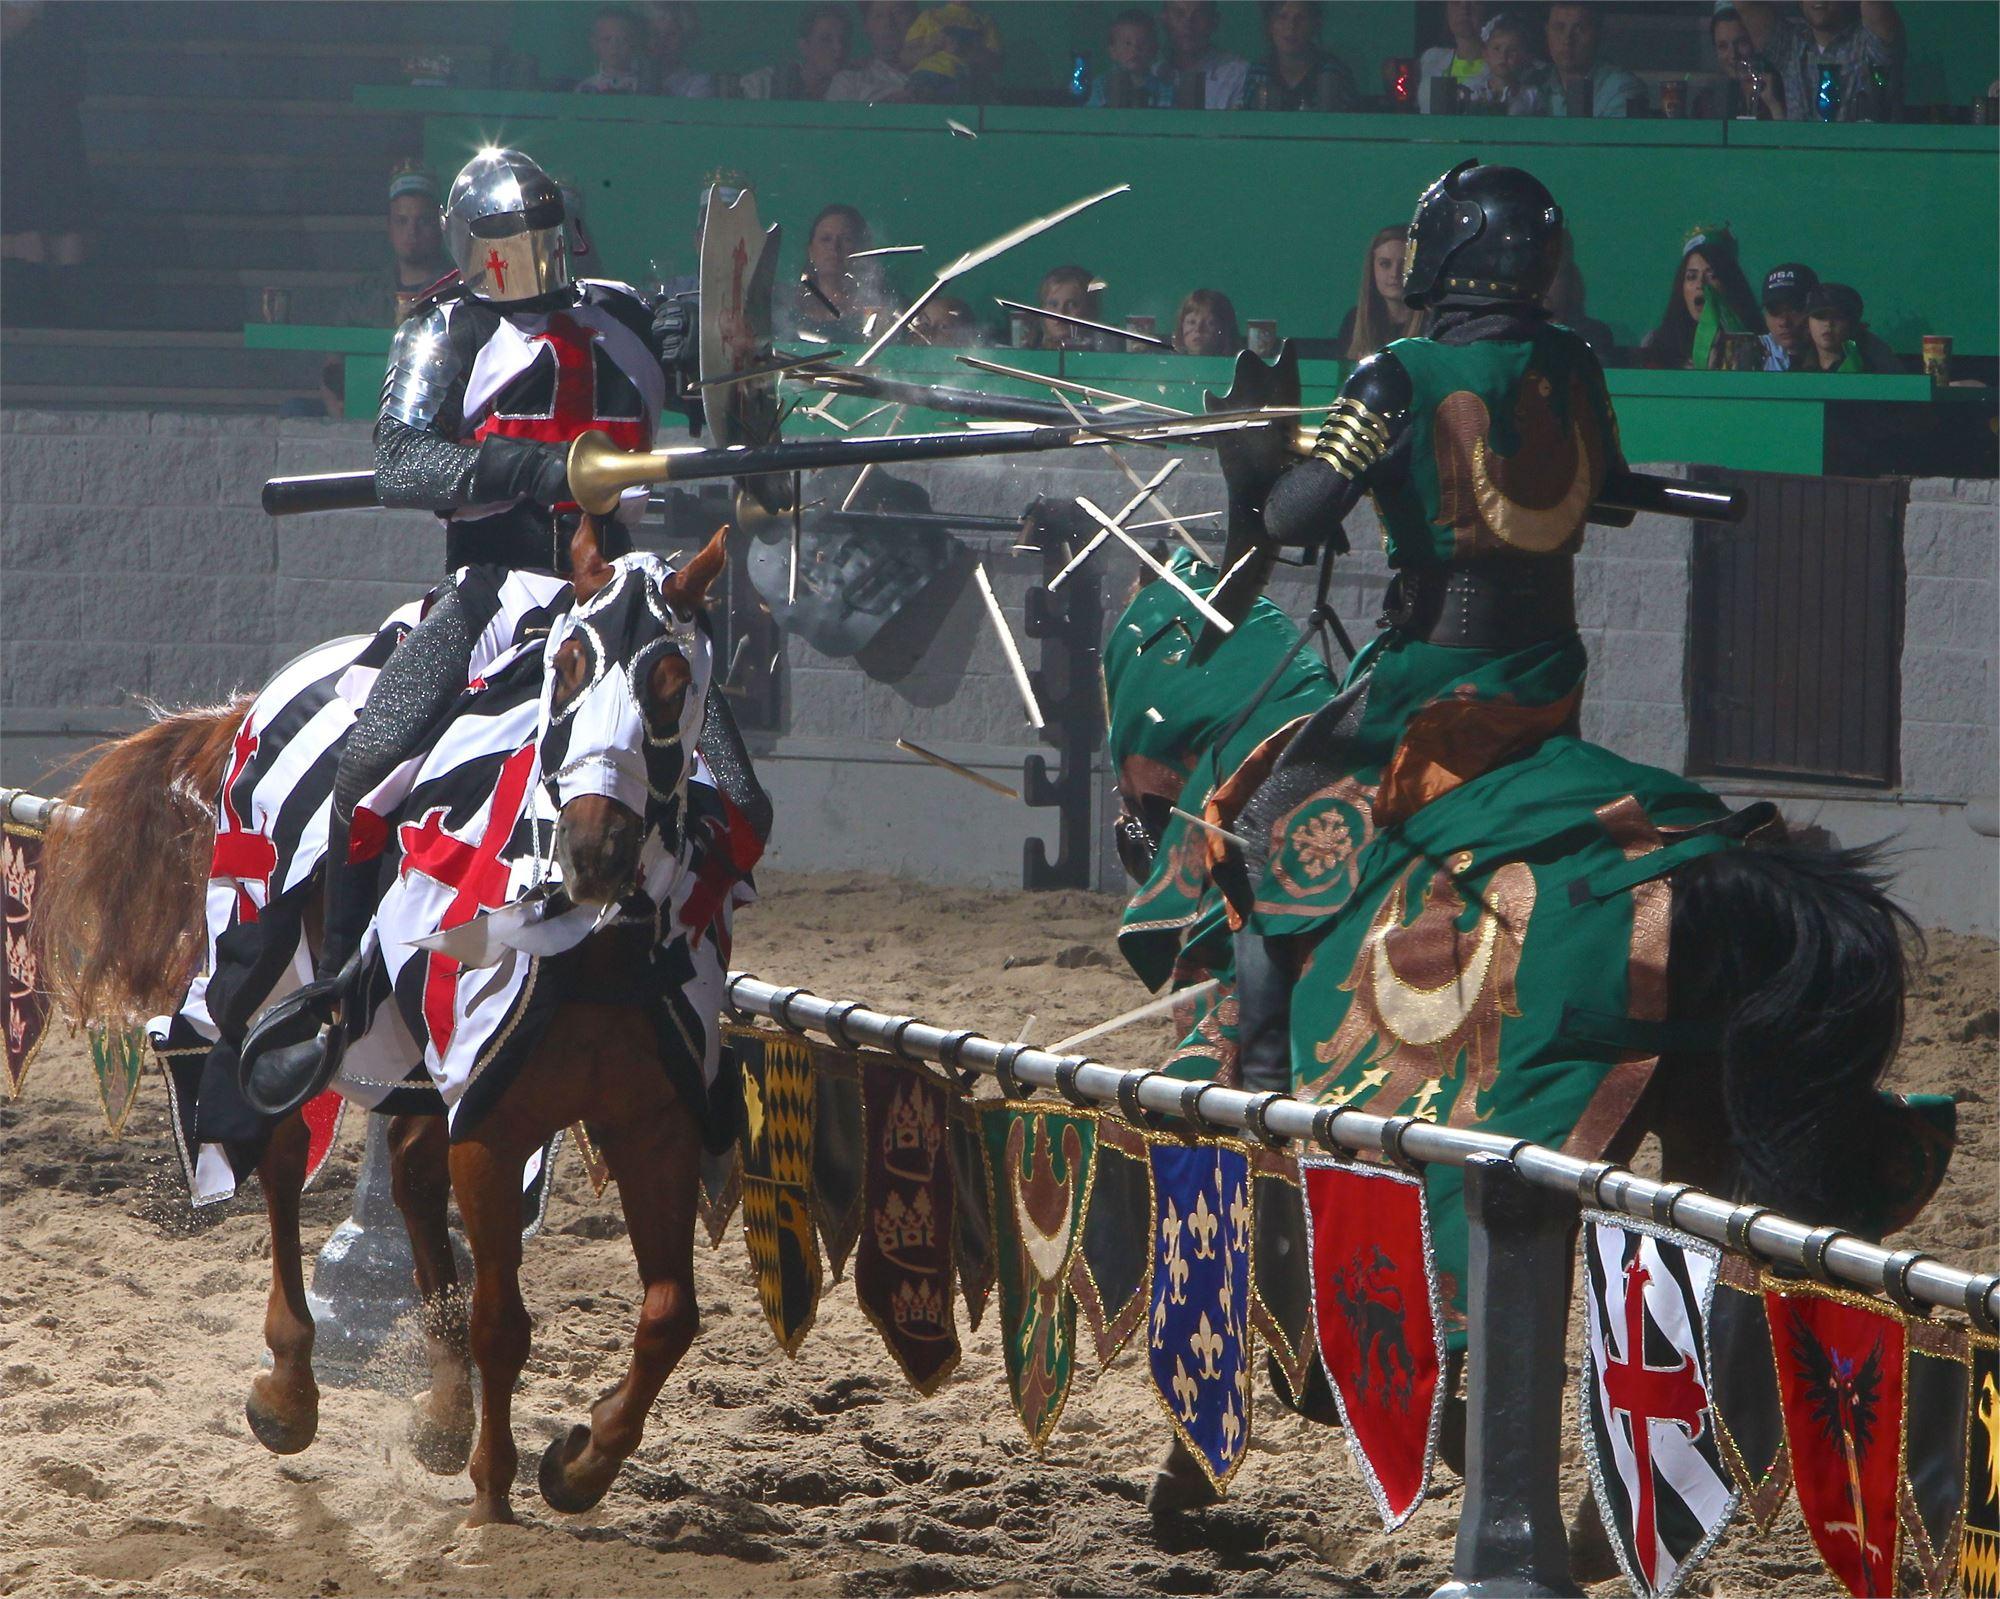 jousting_at_medieval_times_buena_park(6)